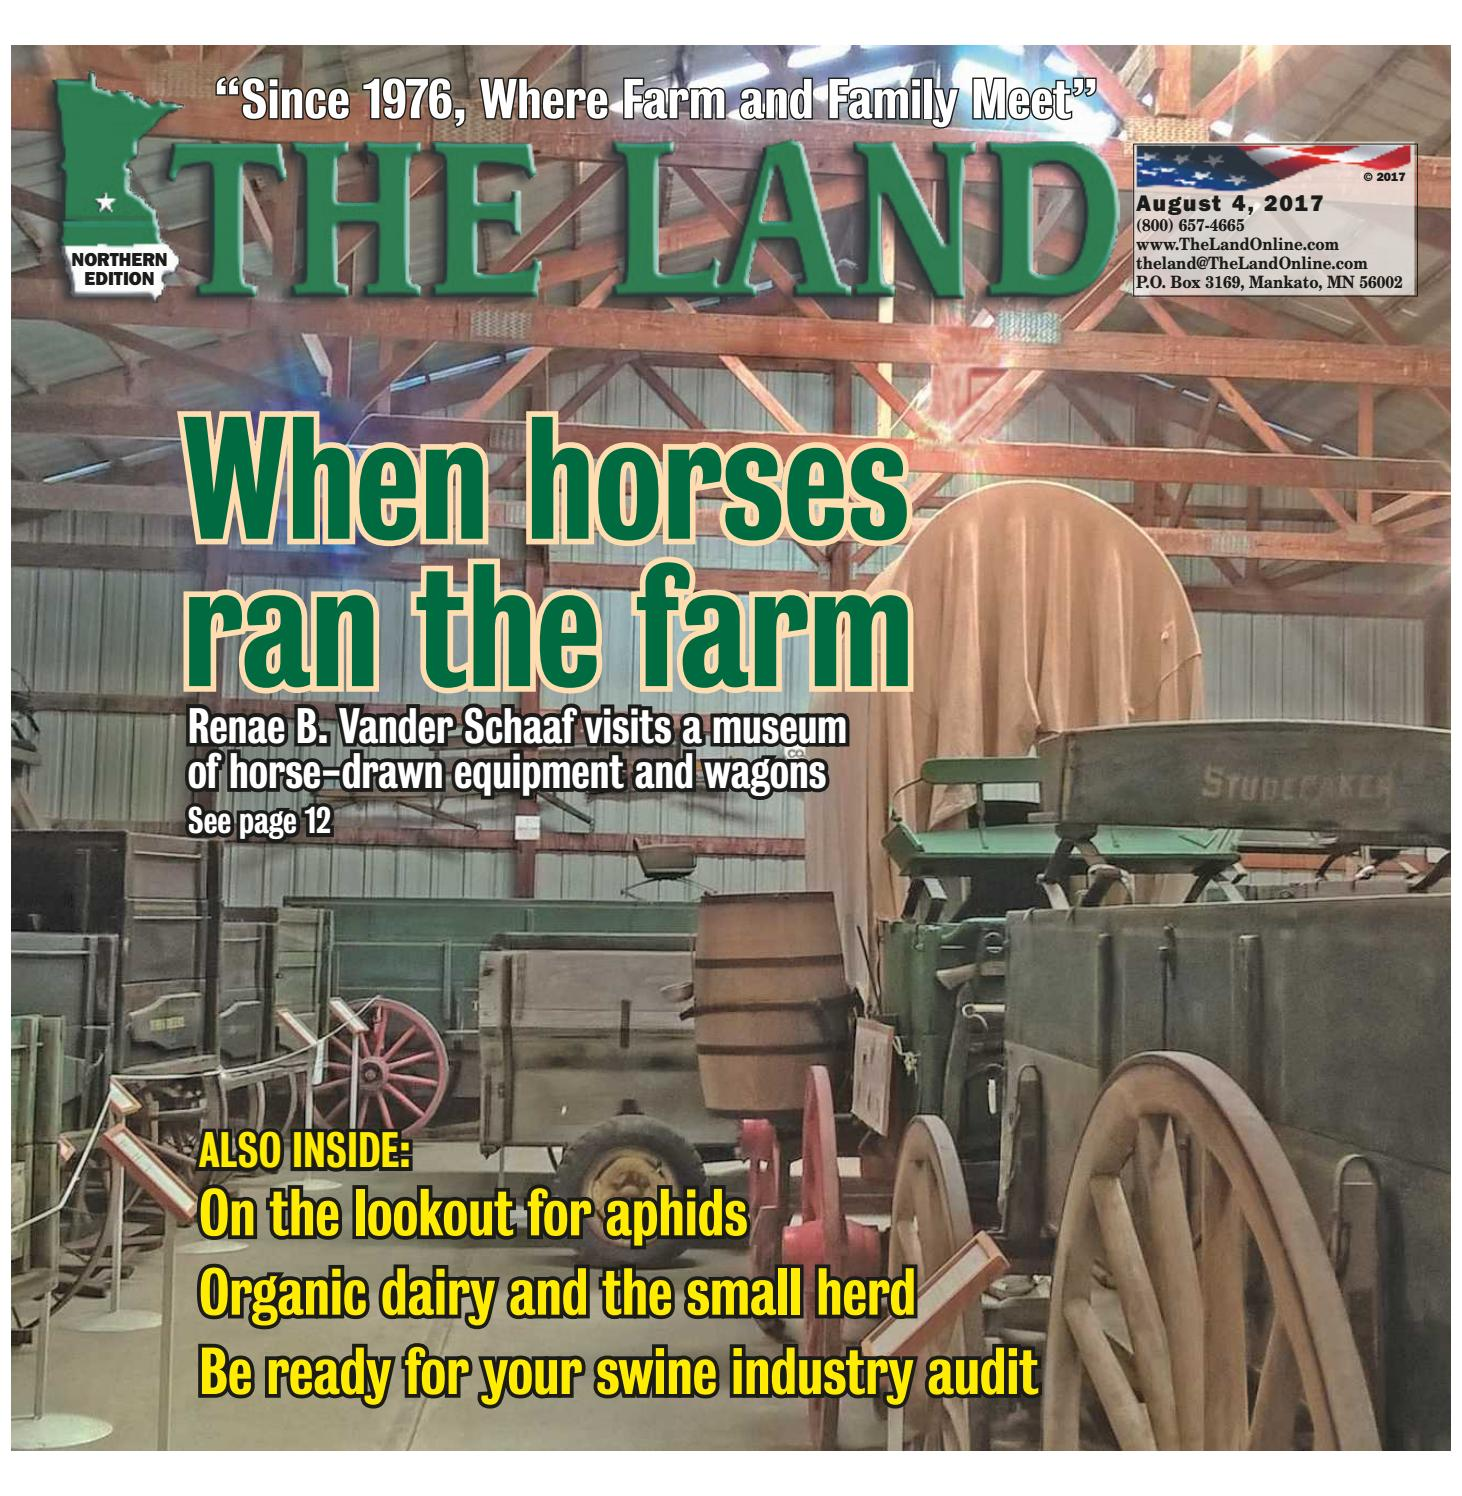 THE LAND ~ August 4, 2017 ~ Northern Edition by The Land - issuu